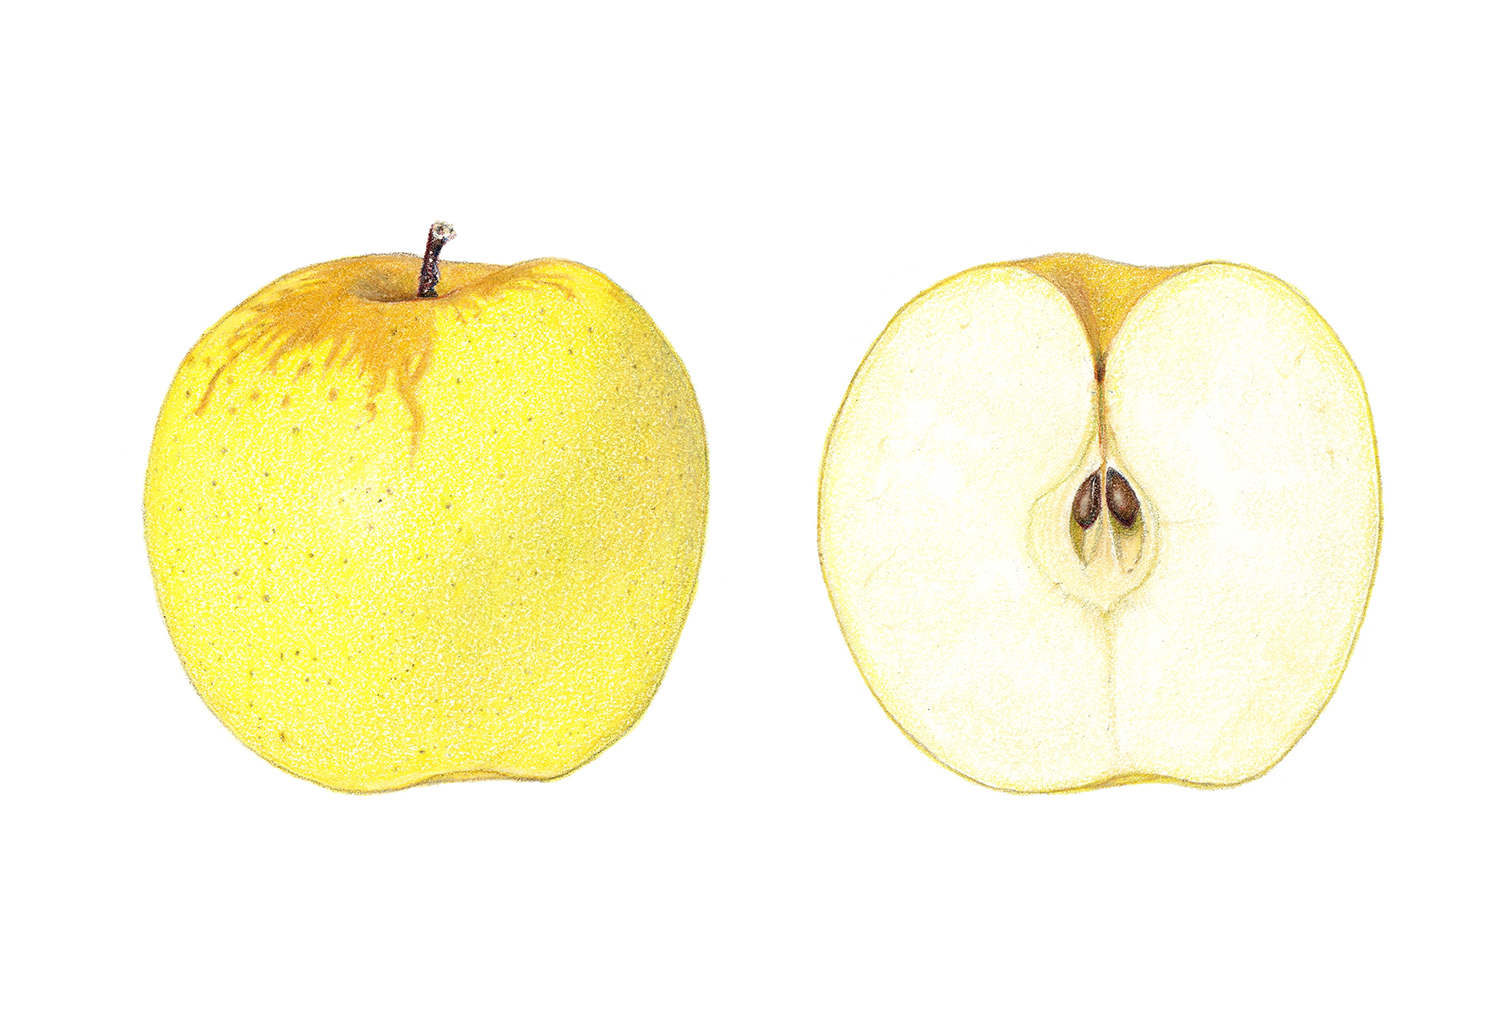 Golden delicious apple, colored pencil